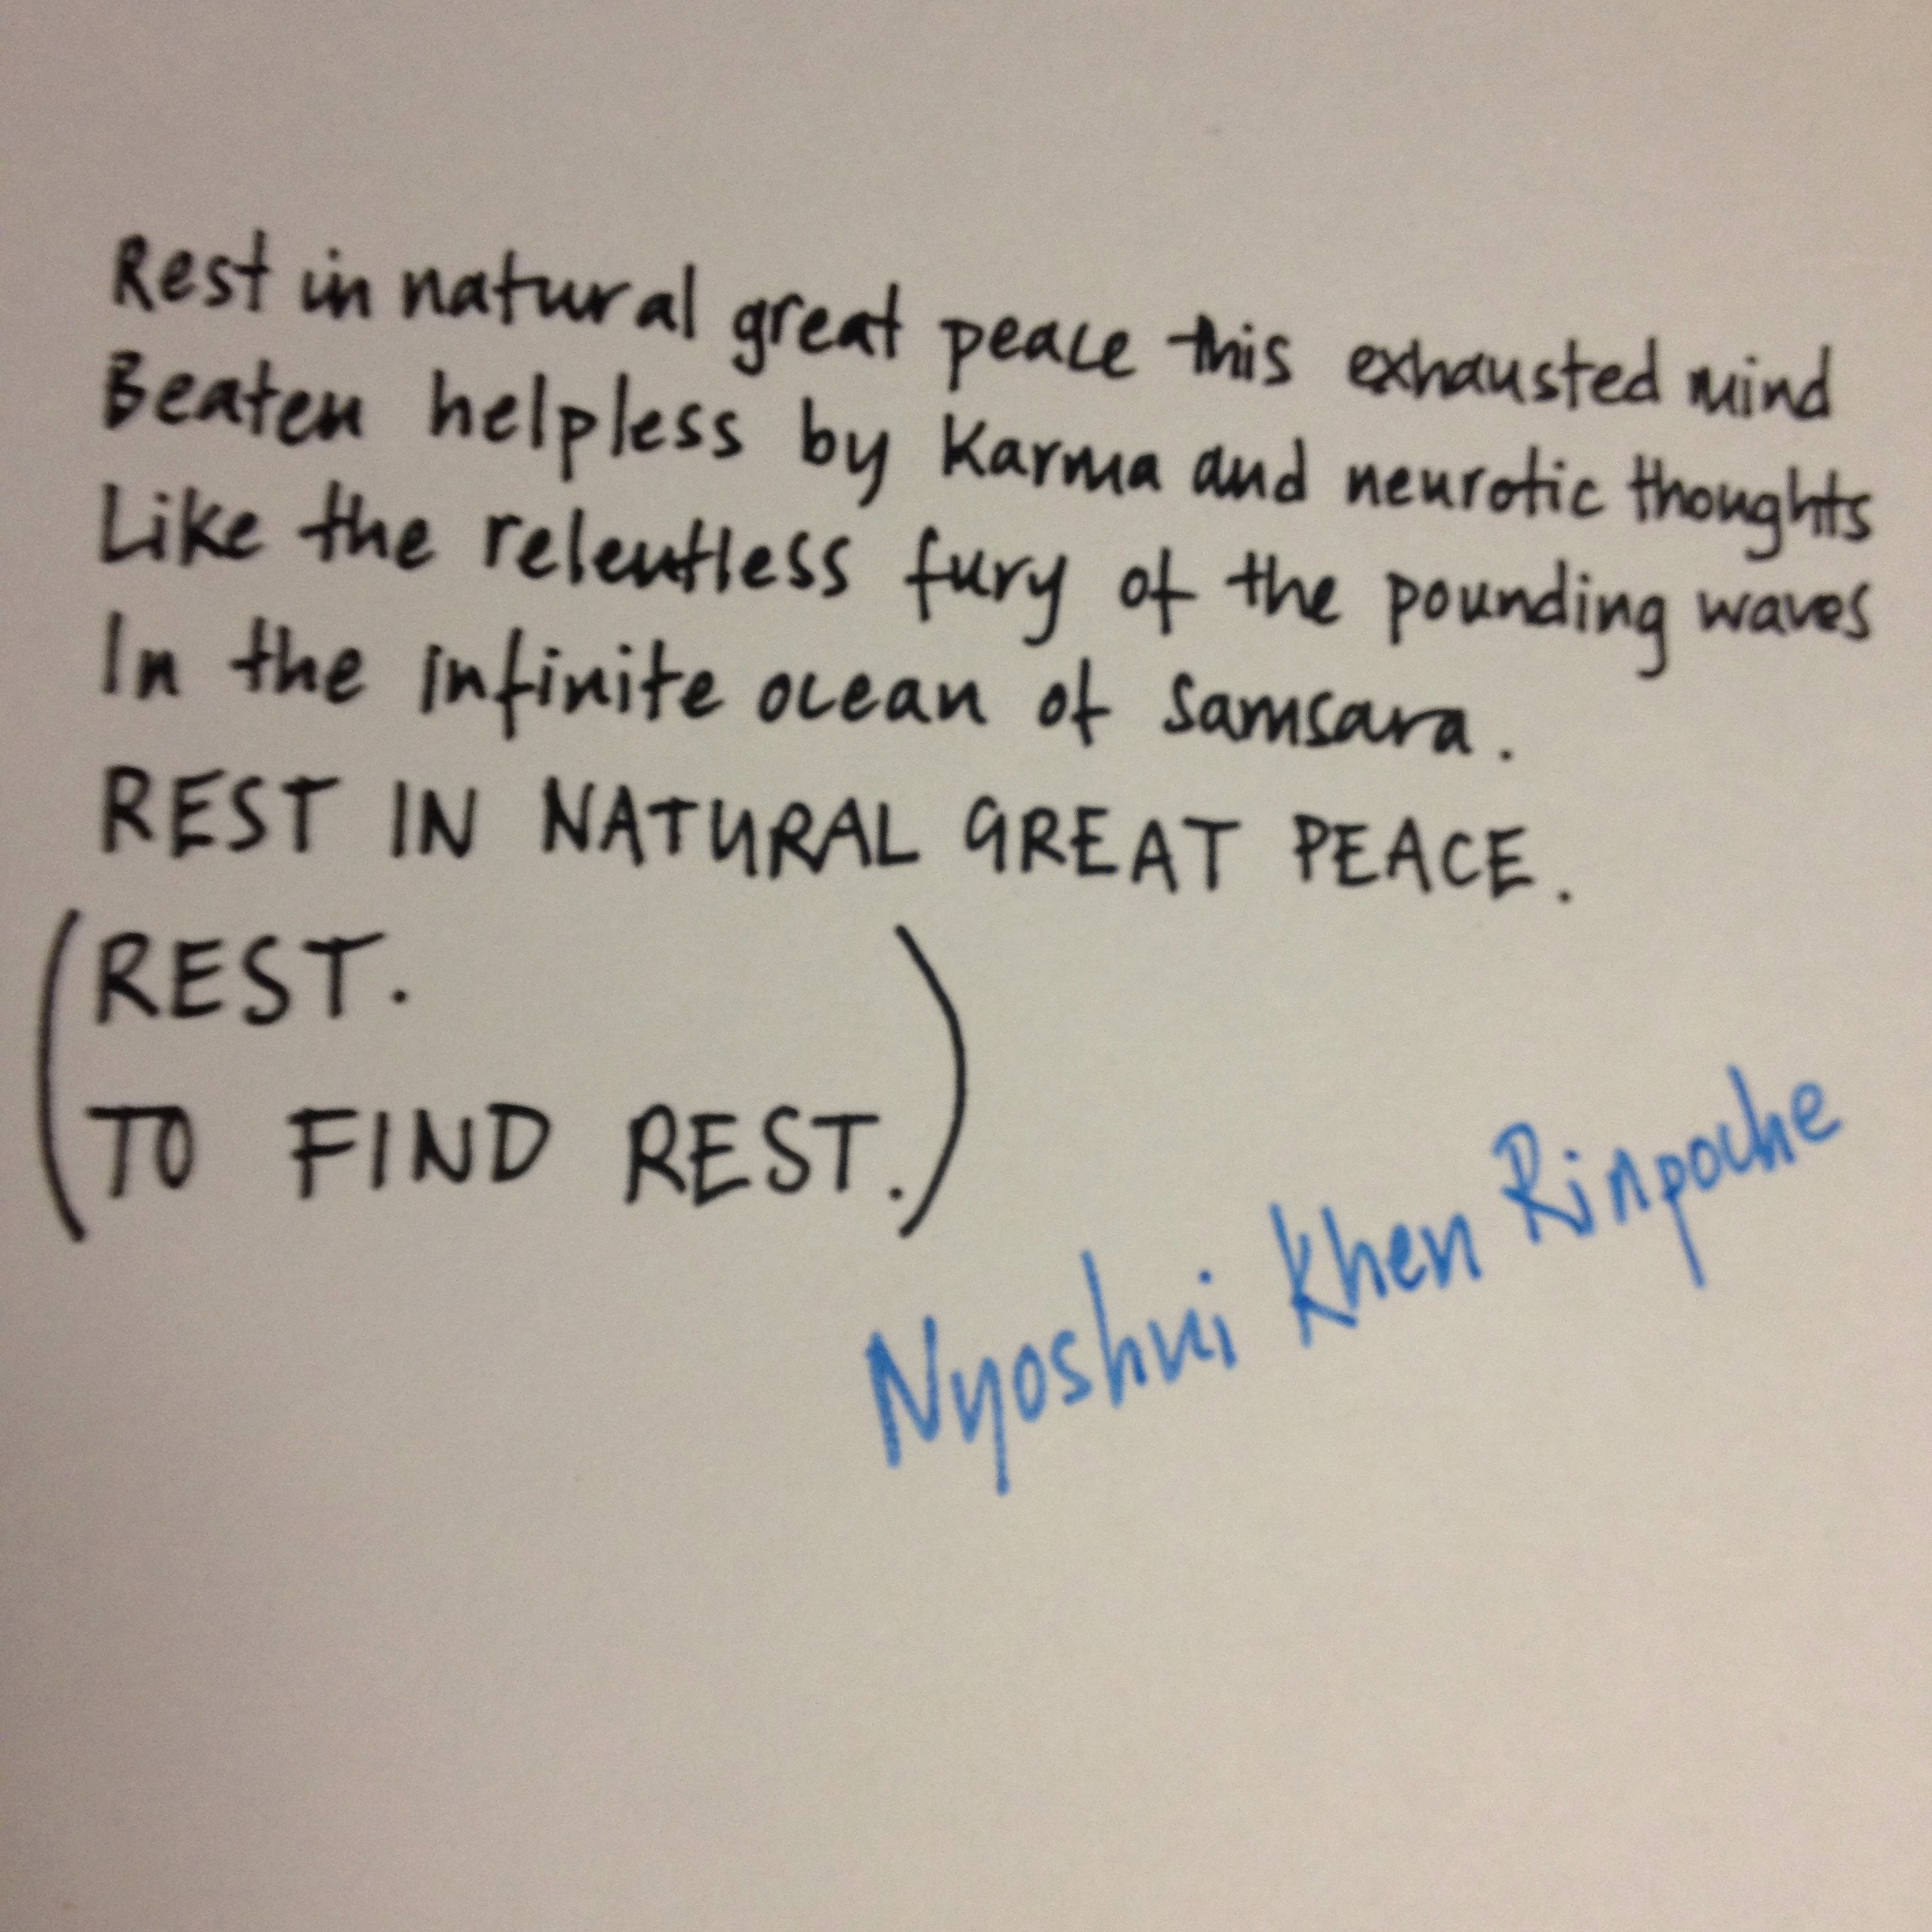 rest in natural great peace.jpg